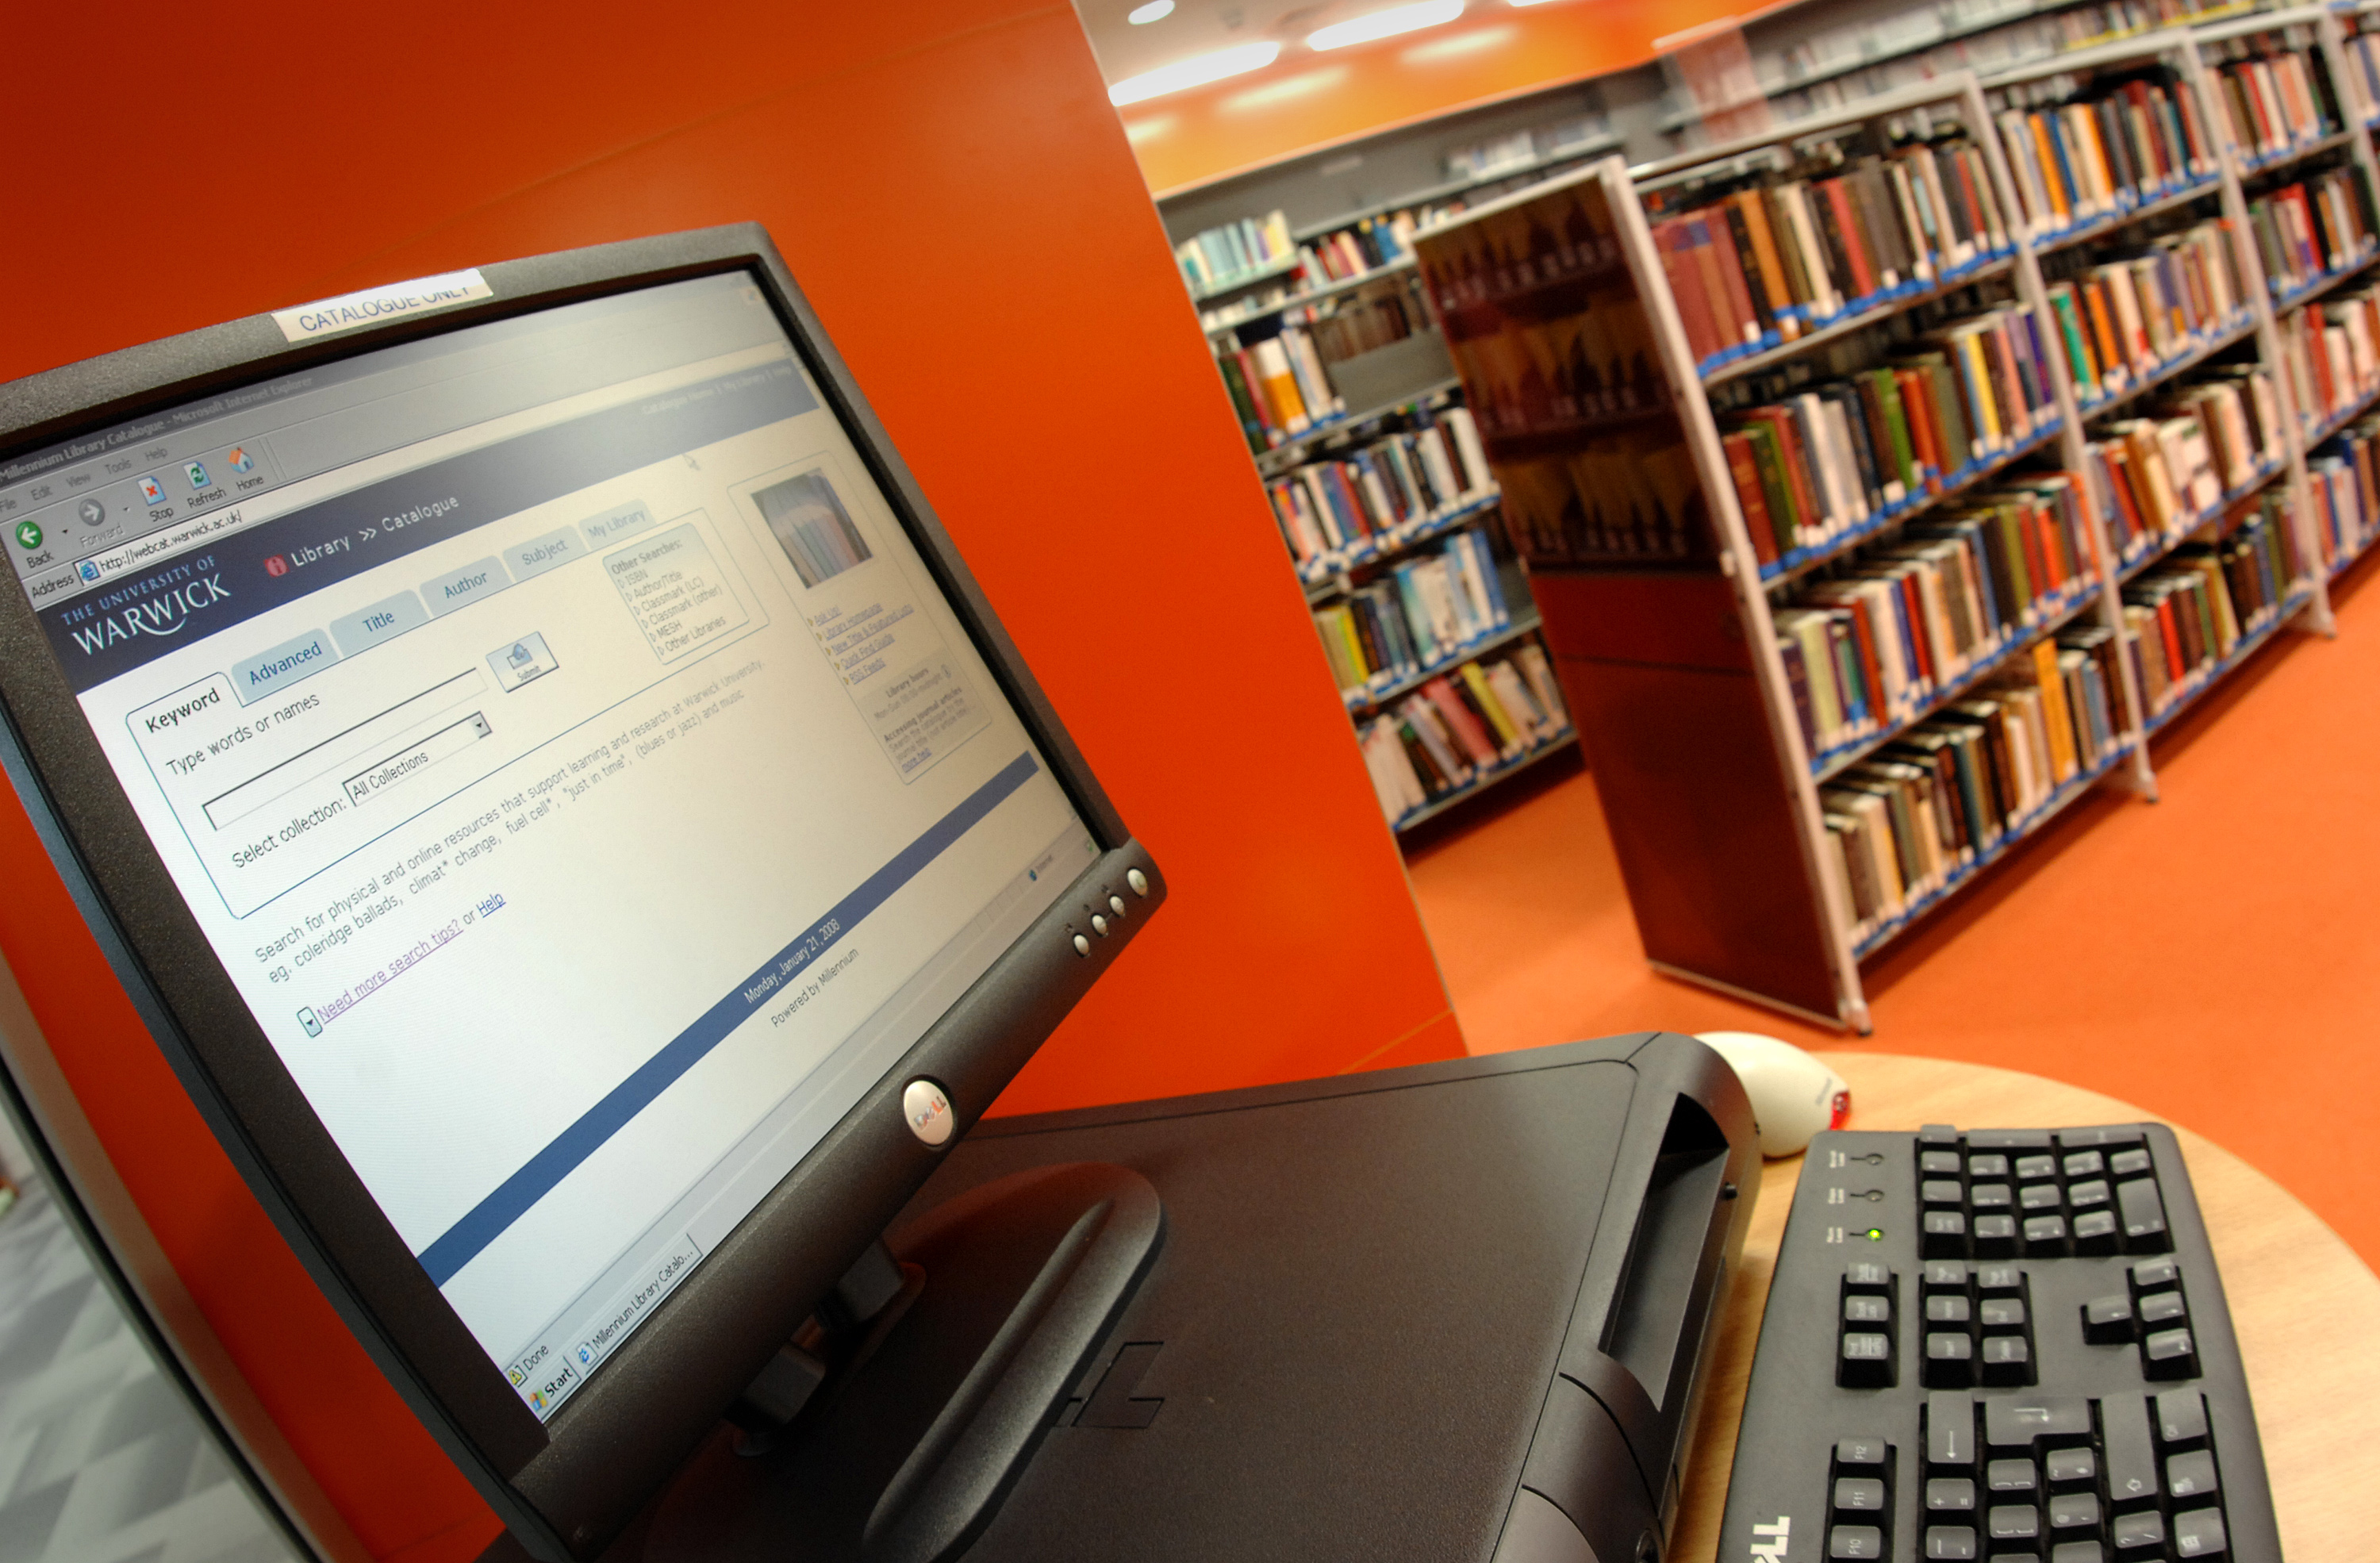 Media Library - Images Uploaded May 08